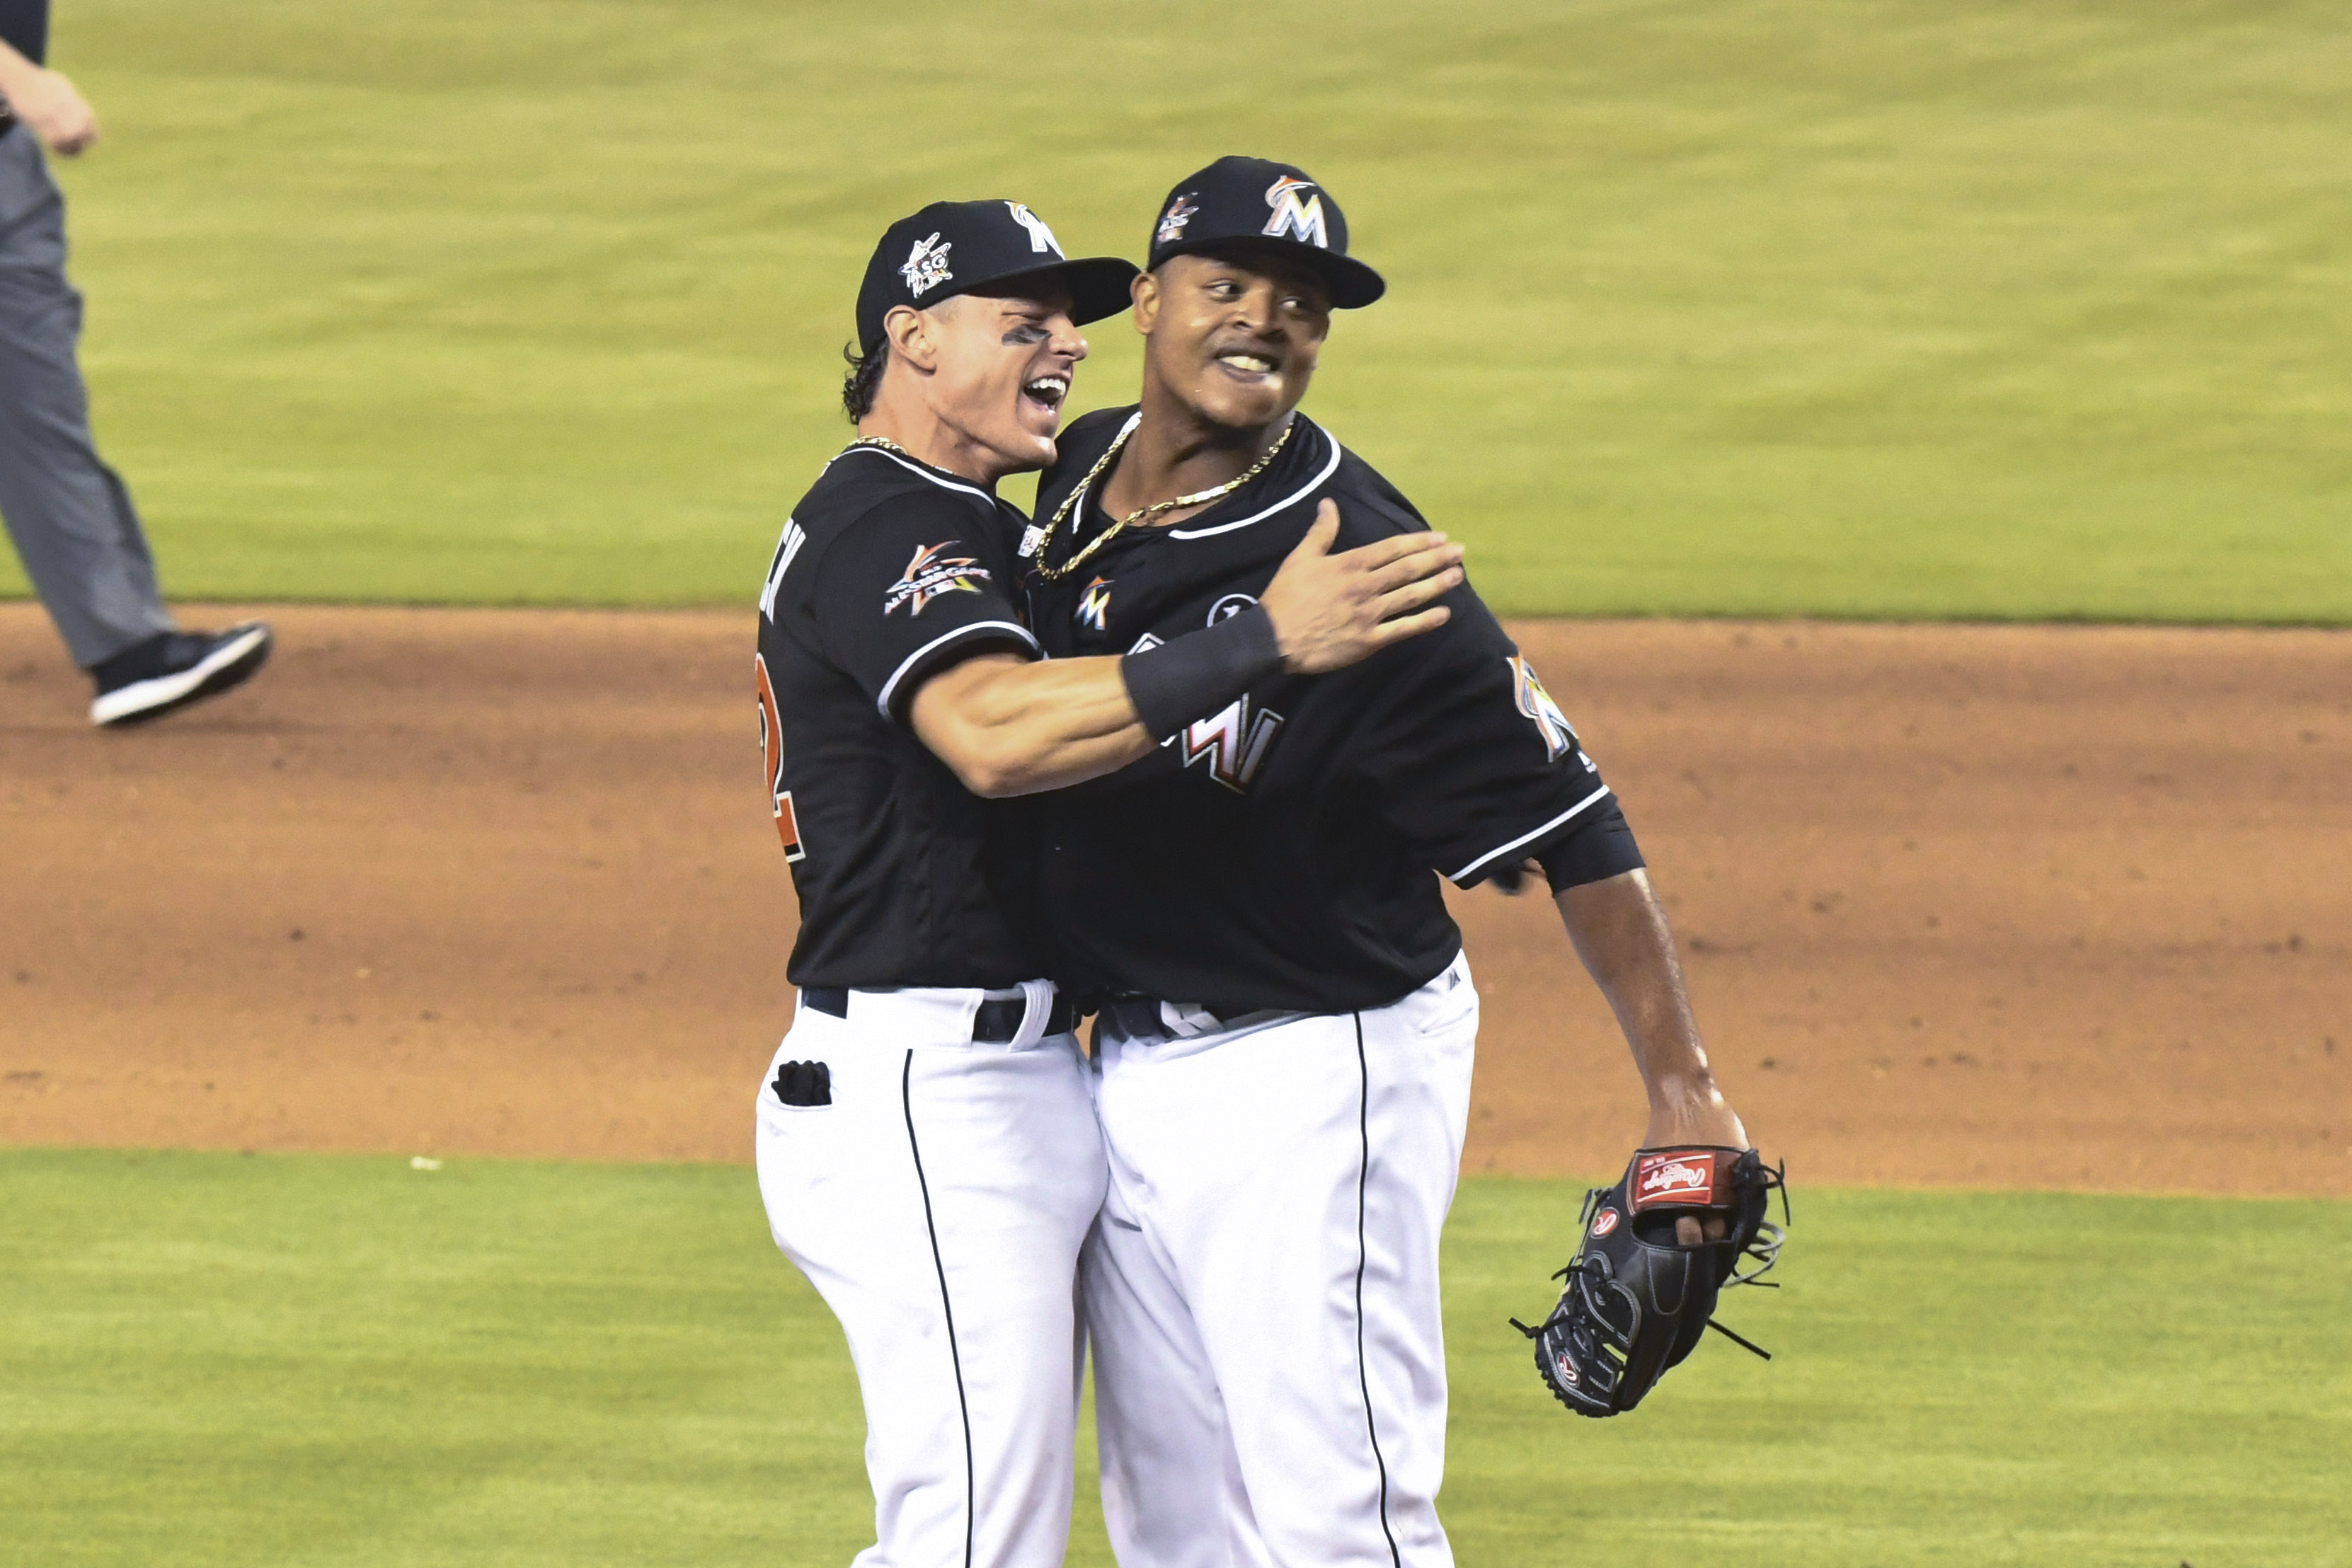 Edinson Volquez #36 of the Miami Marlins celebrates with Derek Dietrich #32 after throwing a no hitter against the Arizona Diamondbacks at Marlins Park on June 3, 2017